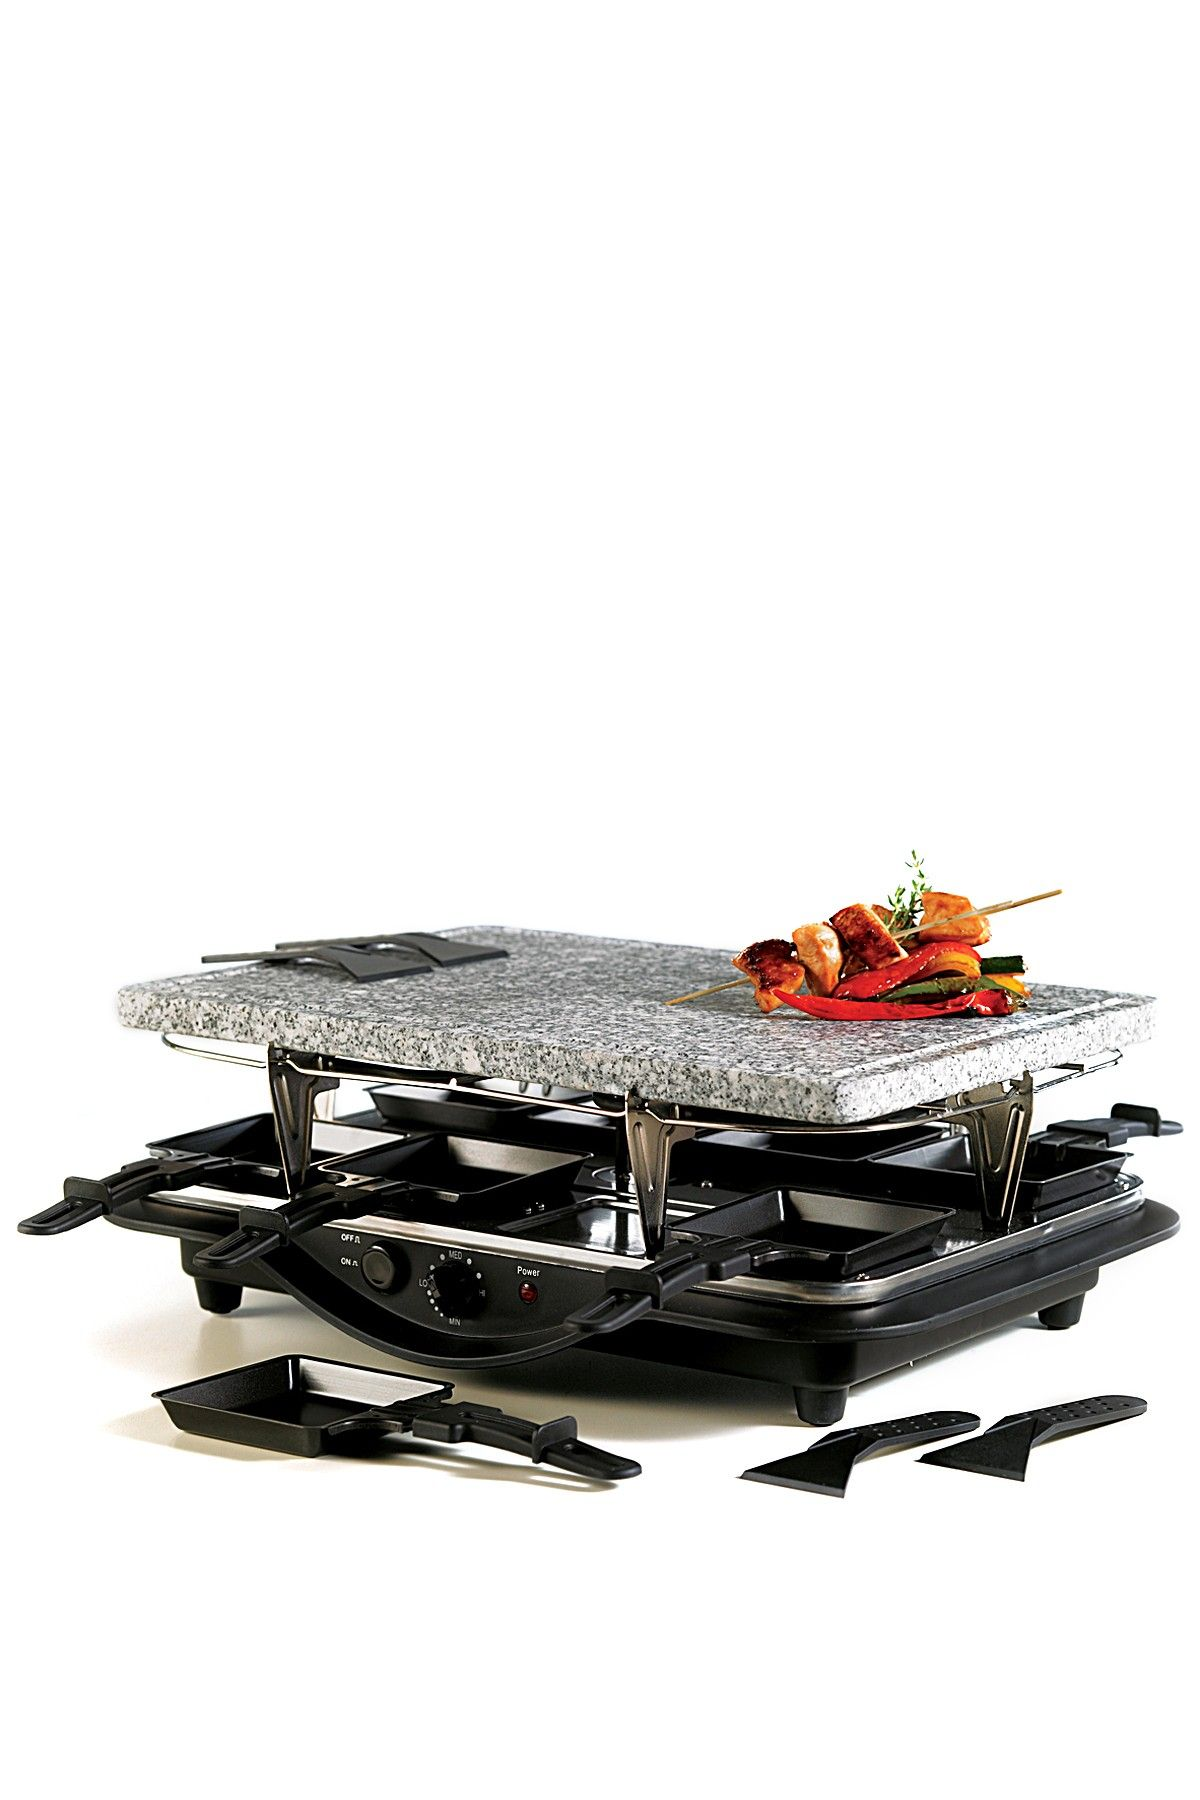 Remy Olivier Think Kitchen Dual Raclette Stone & Grill - Black ...